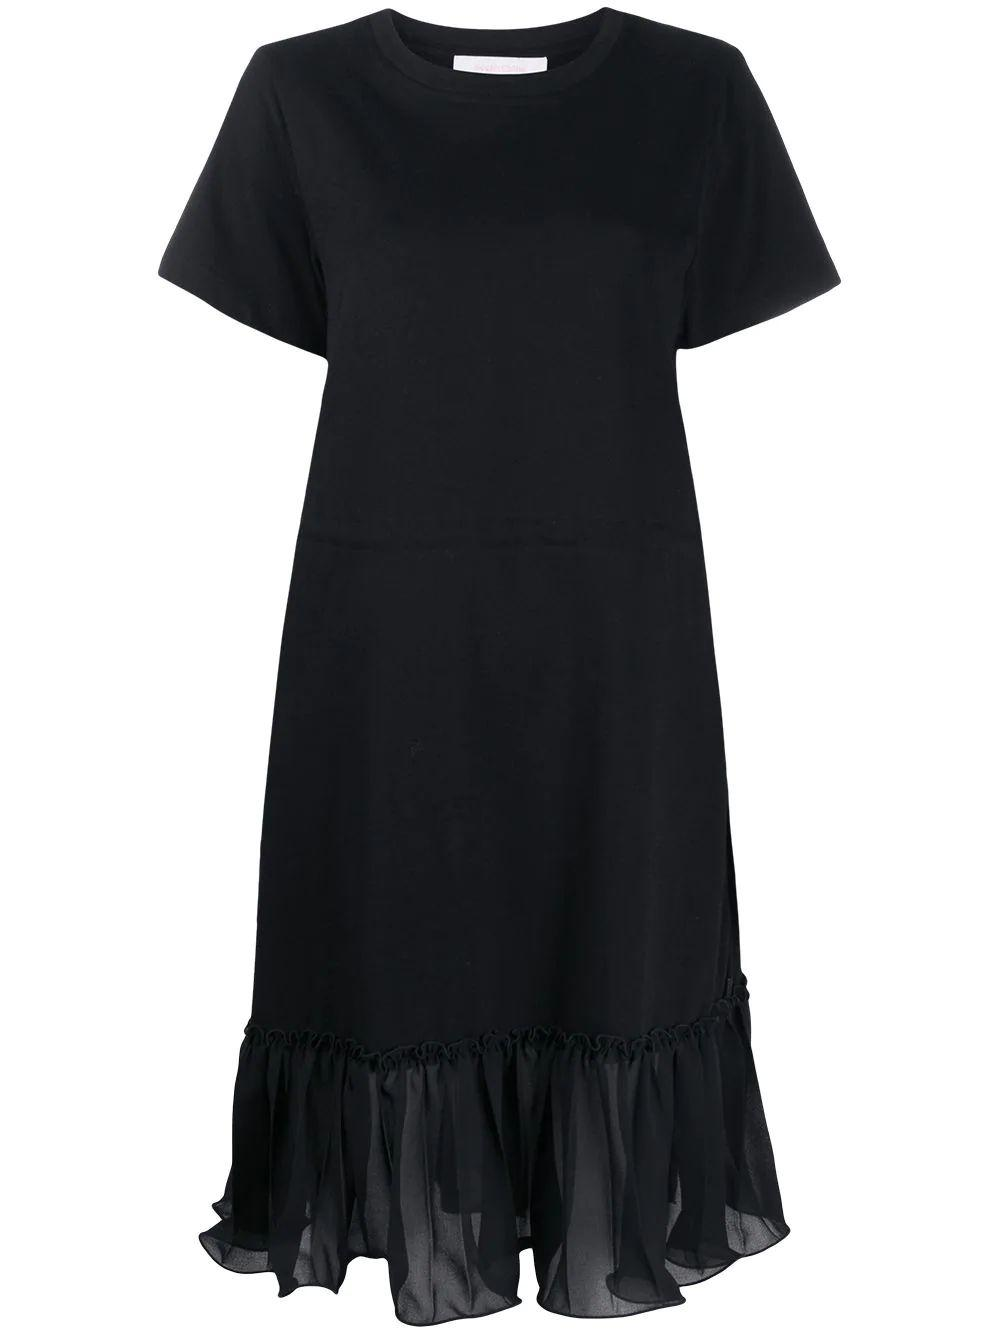 Ruffle Detail Drawstring T-Shirt Dress